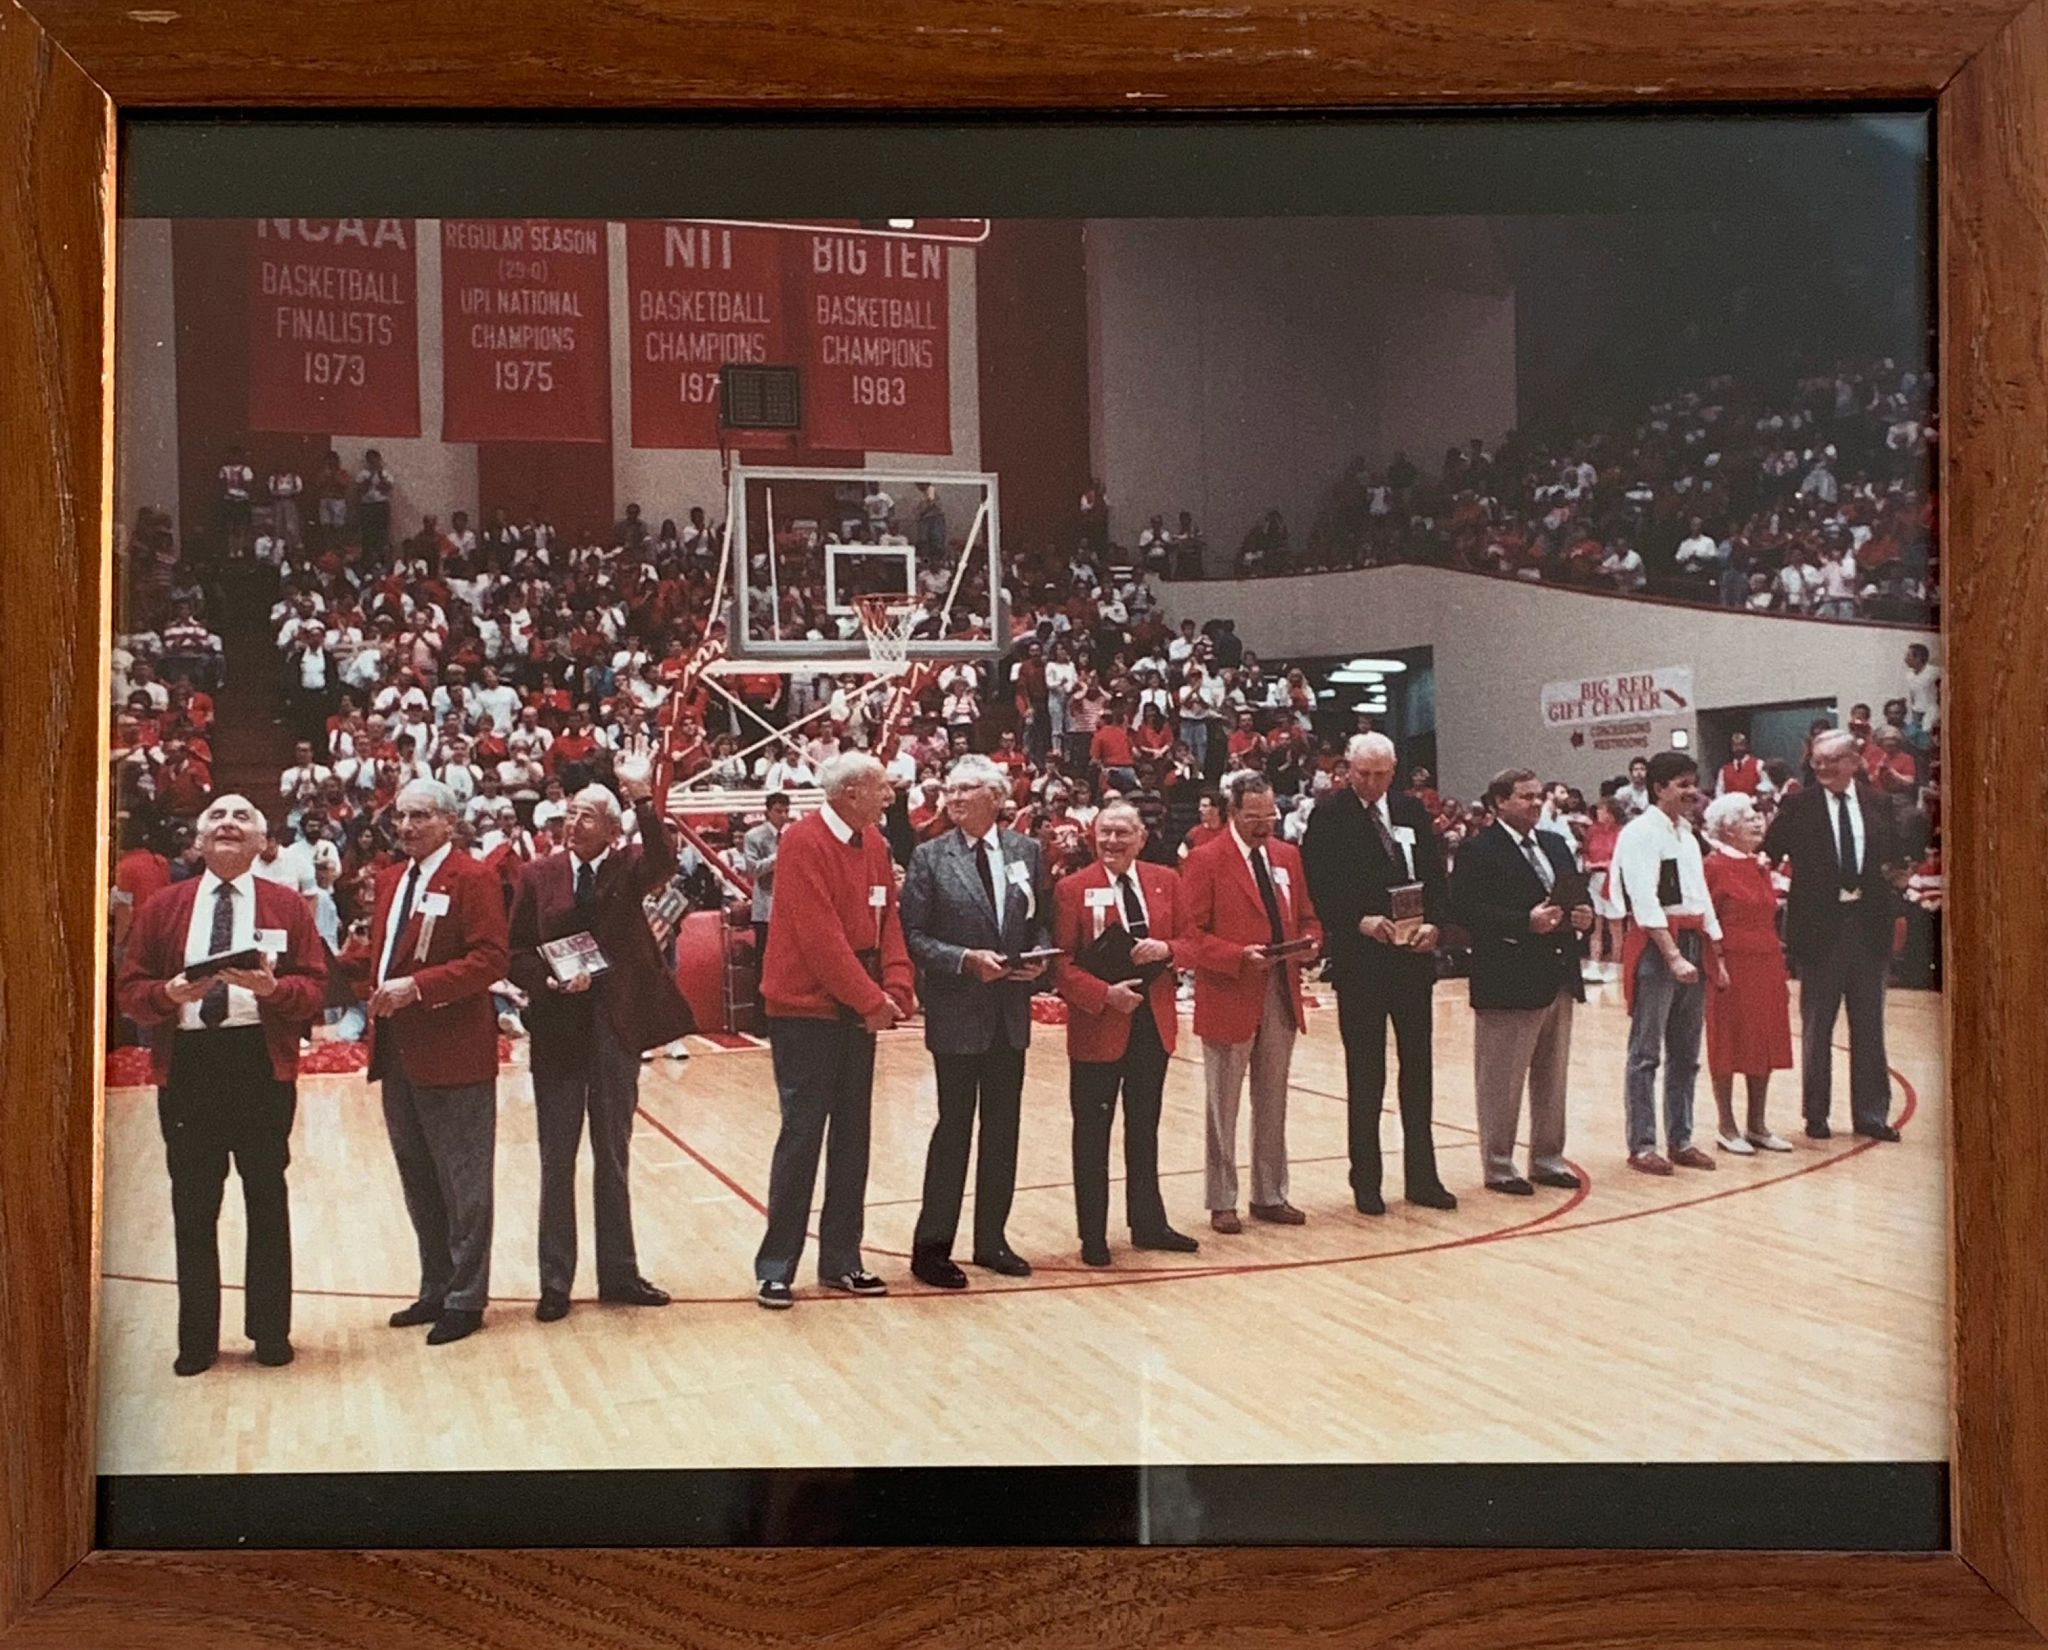 Members of the 1940 Hoosiers championship team on the floor at Assembly Hall in the late 1980s